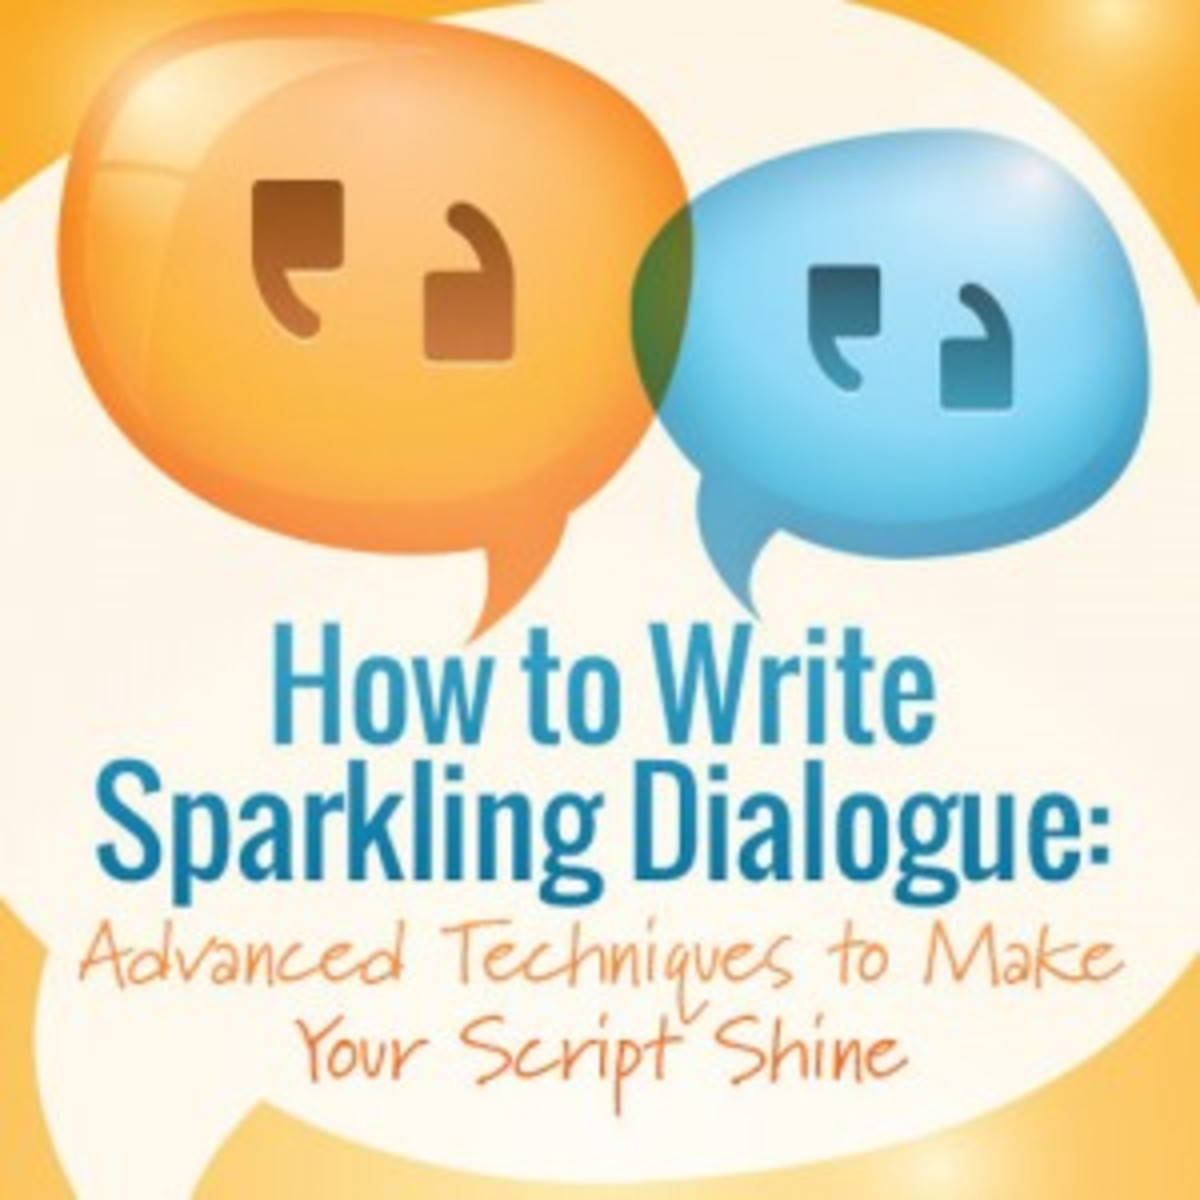 How to Write Sparkling Dialogue: Advanced Techniques to Make Your Script Shine